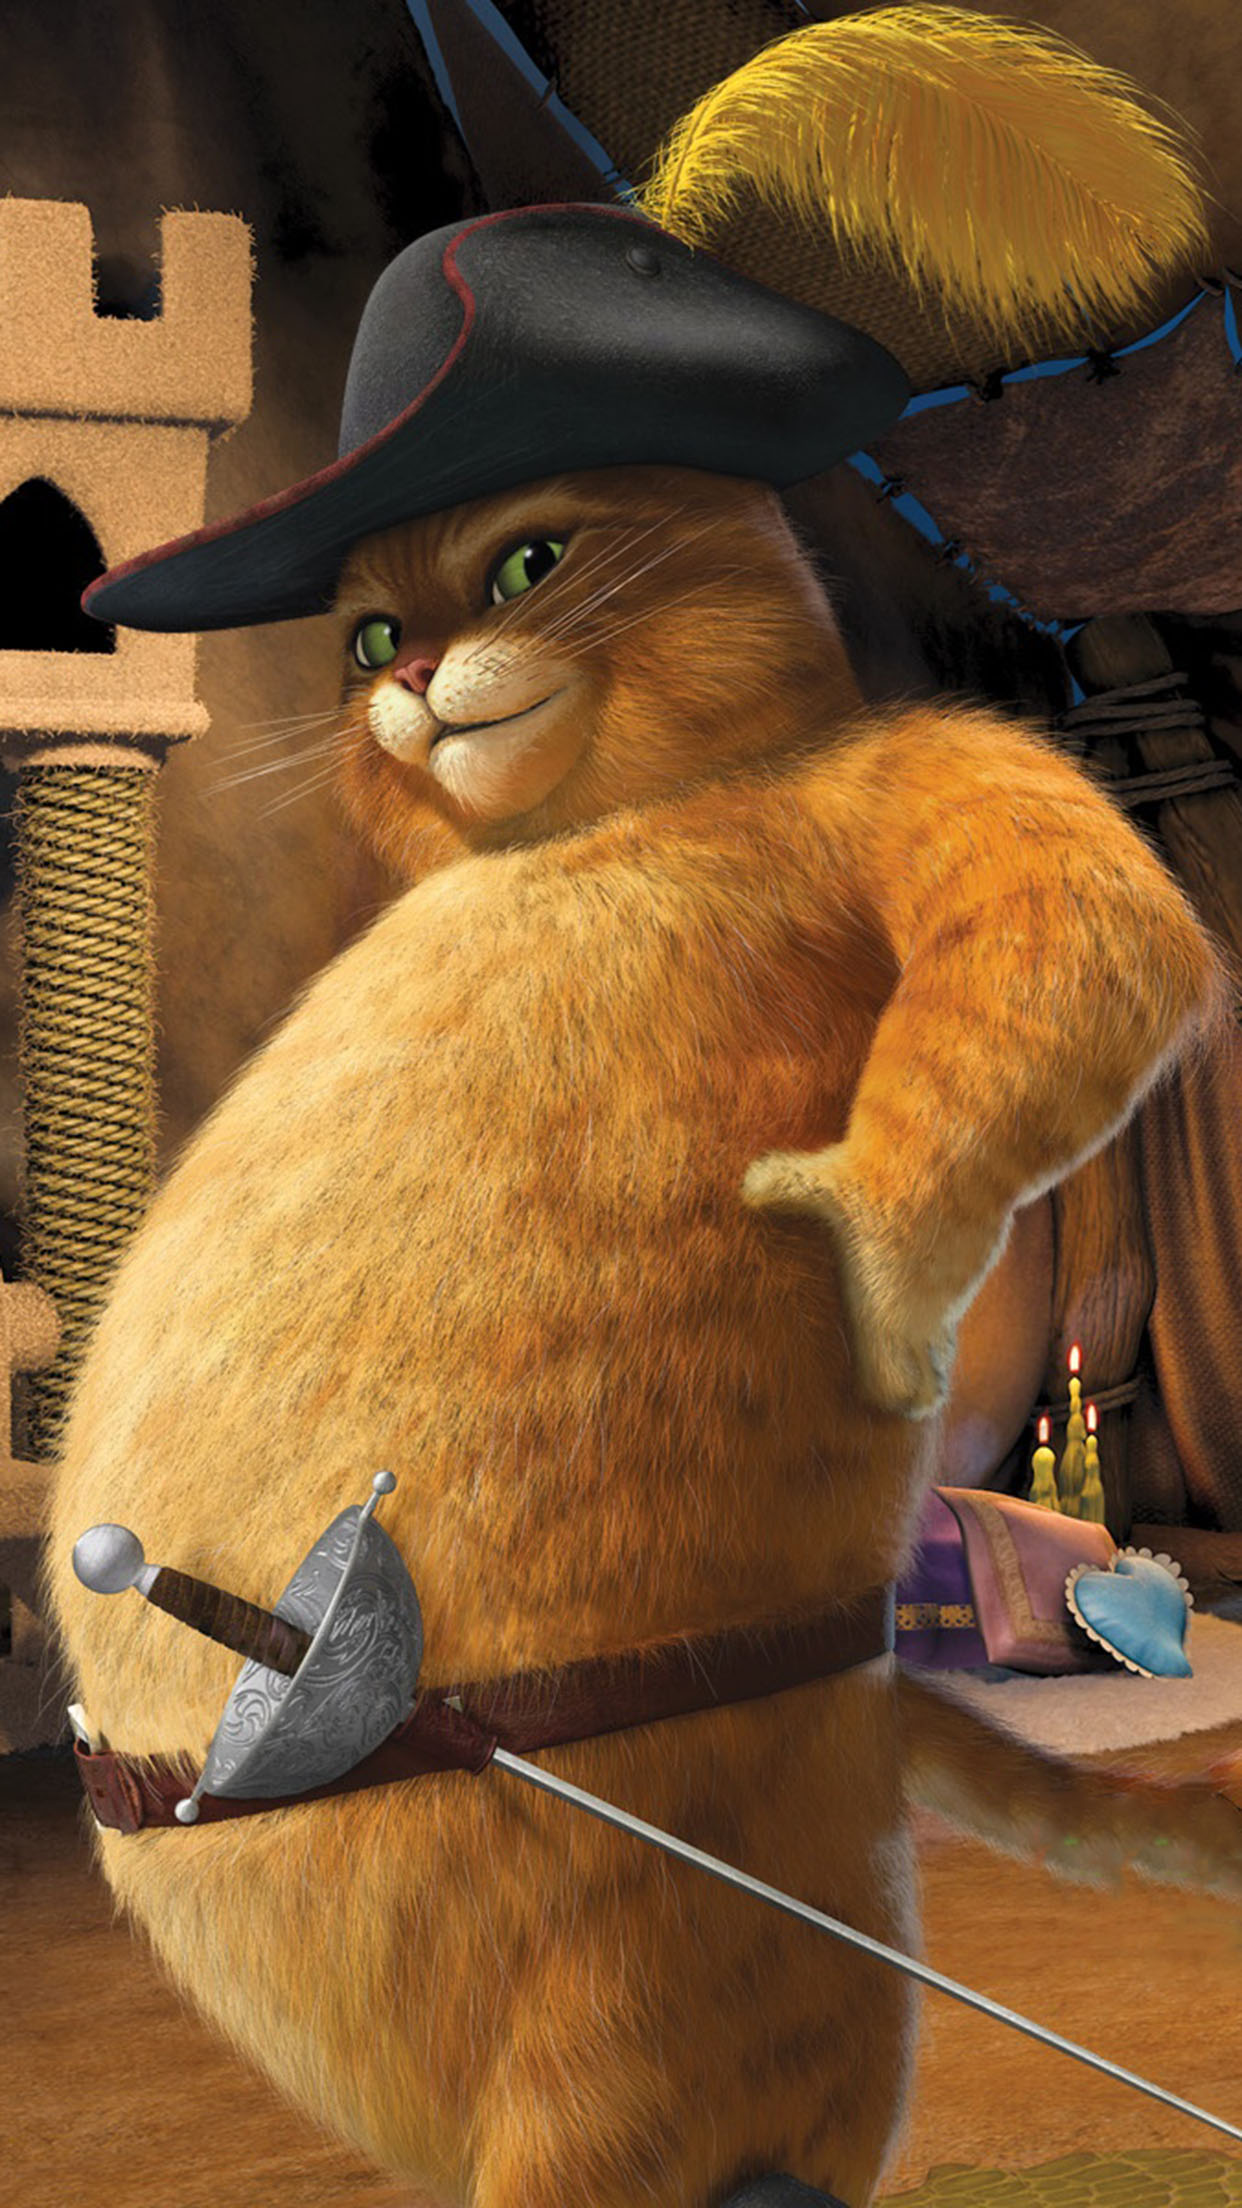 Shrek Puss in boots 3Wallpapers iPhone Parallax Puss in boots